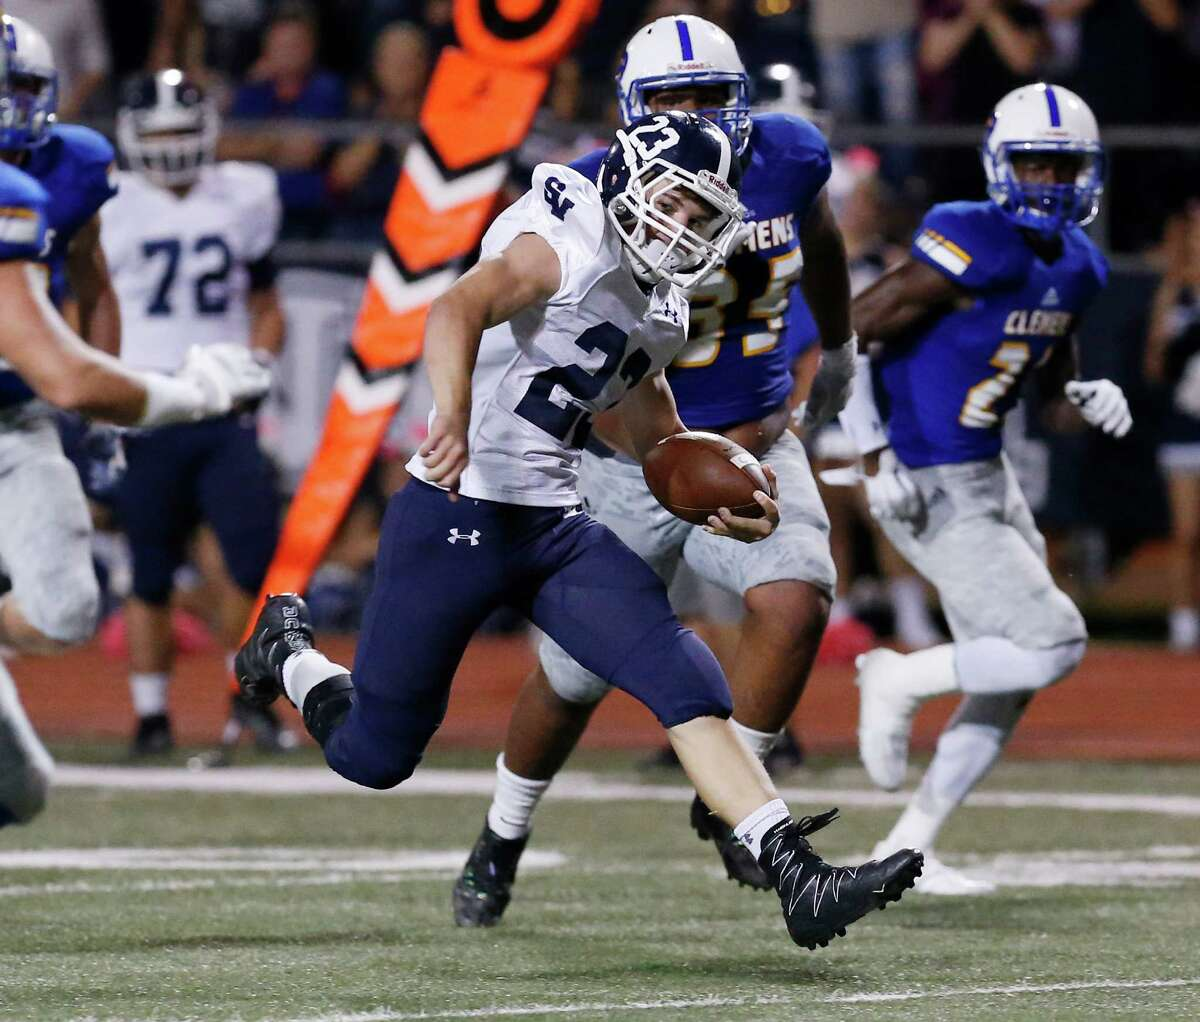 Smithson Valley's Indiana Hawes (23) looks for room to run against Clemens during their game at Lehnhoff Stadium on Friday, Oct. 14, 2016.